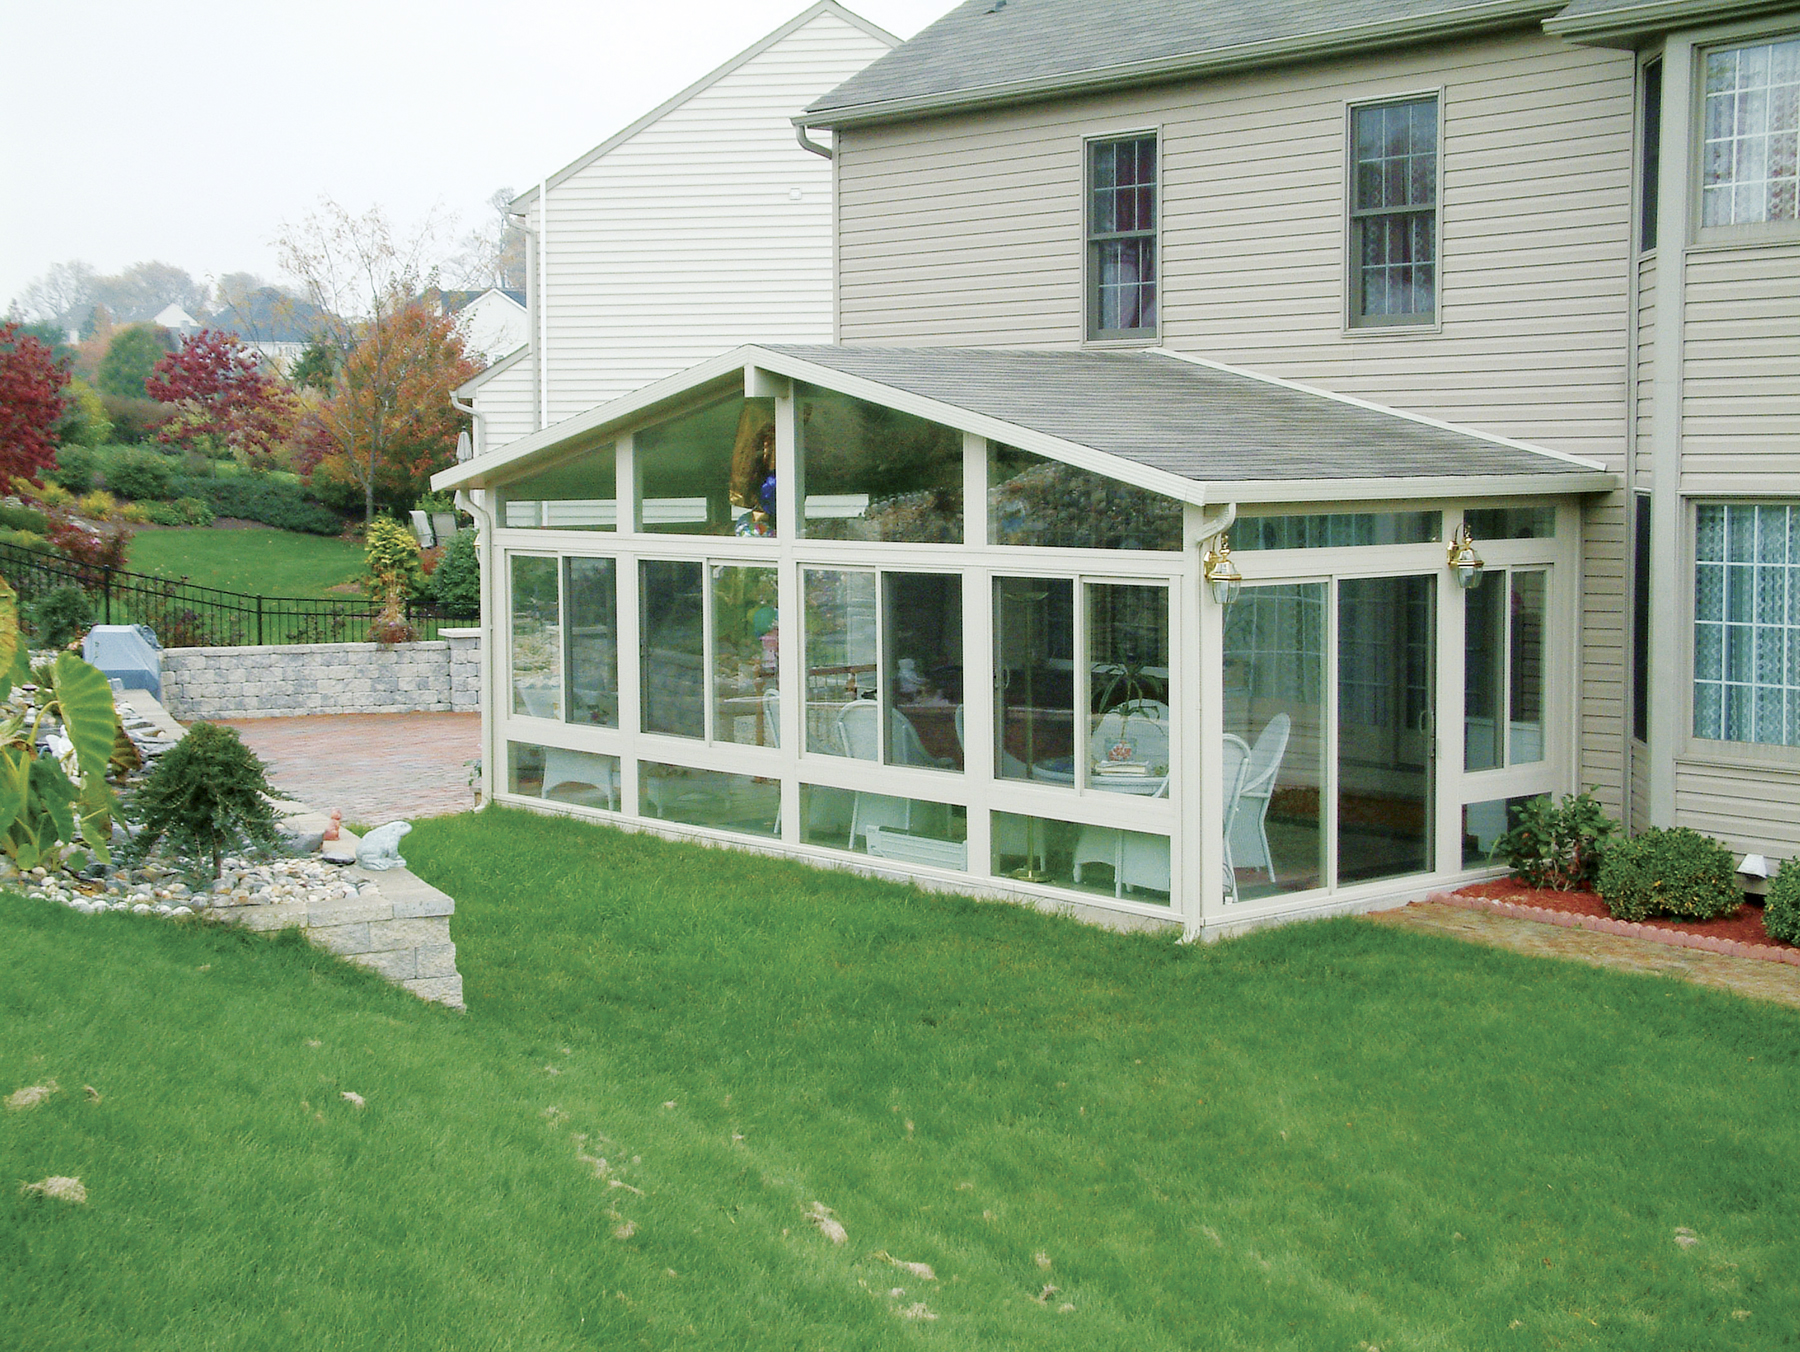 gable style sunroom by betterliving patio sunrooms of pittsburgh